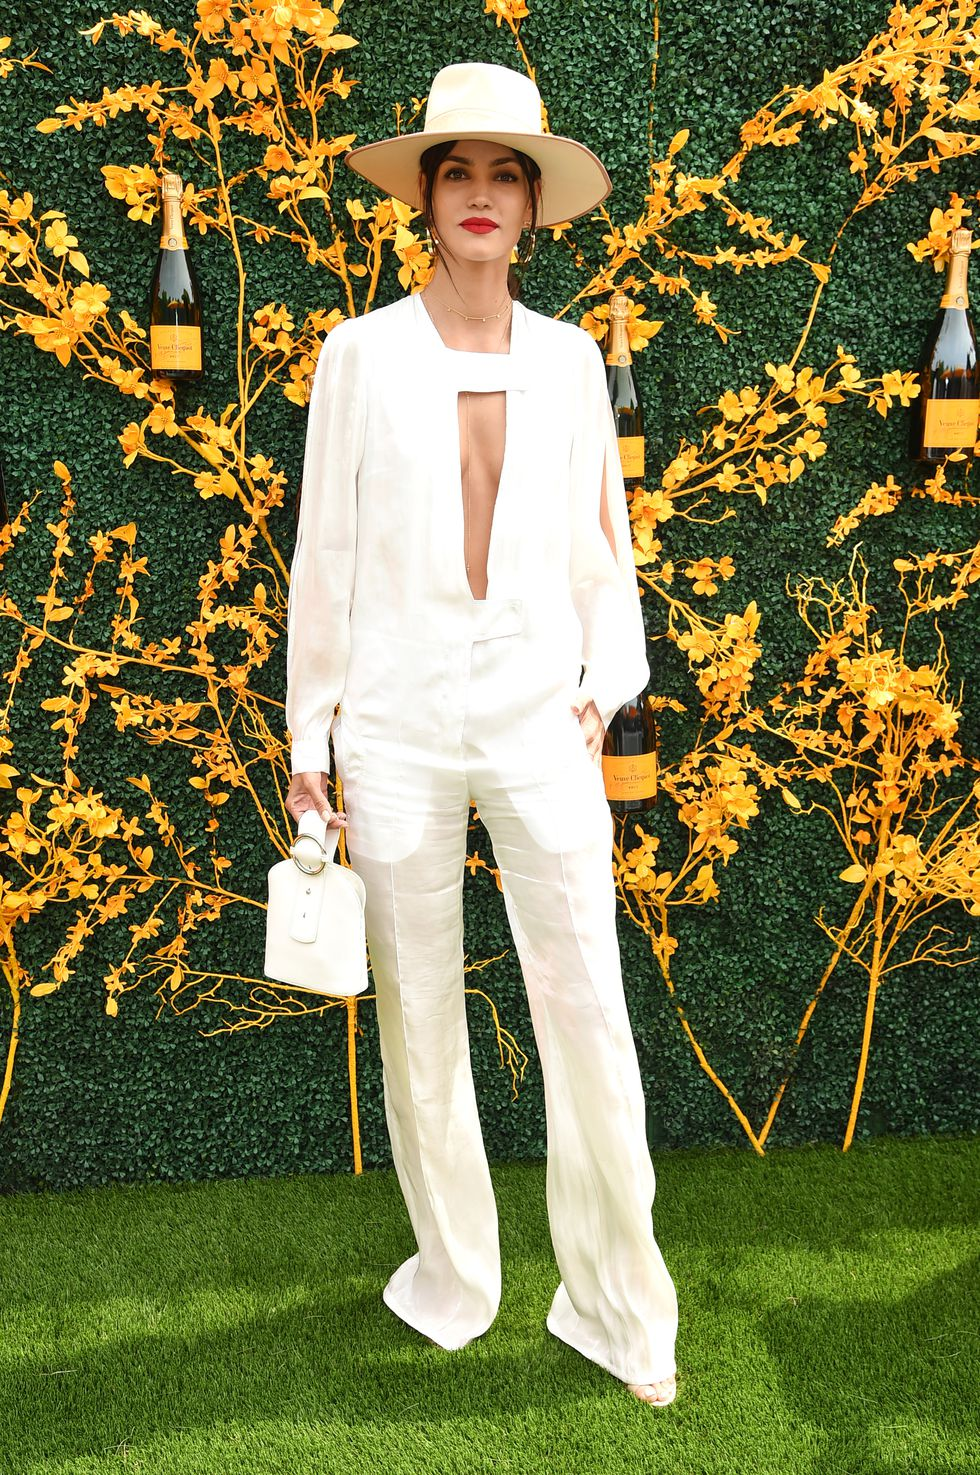 sofia-resing-attends-the-12th-annual-veuve-clicquot-polo-news-photo-1153107385-1559488295.jpg